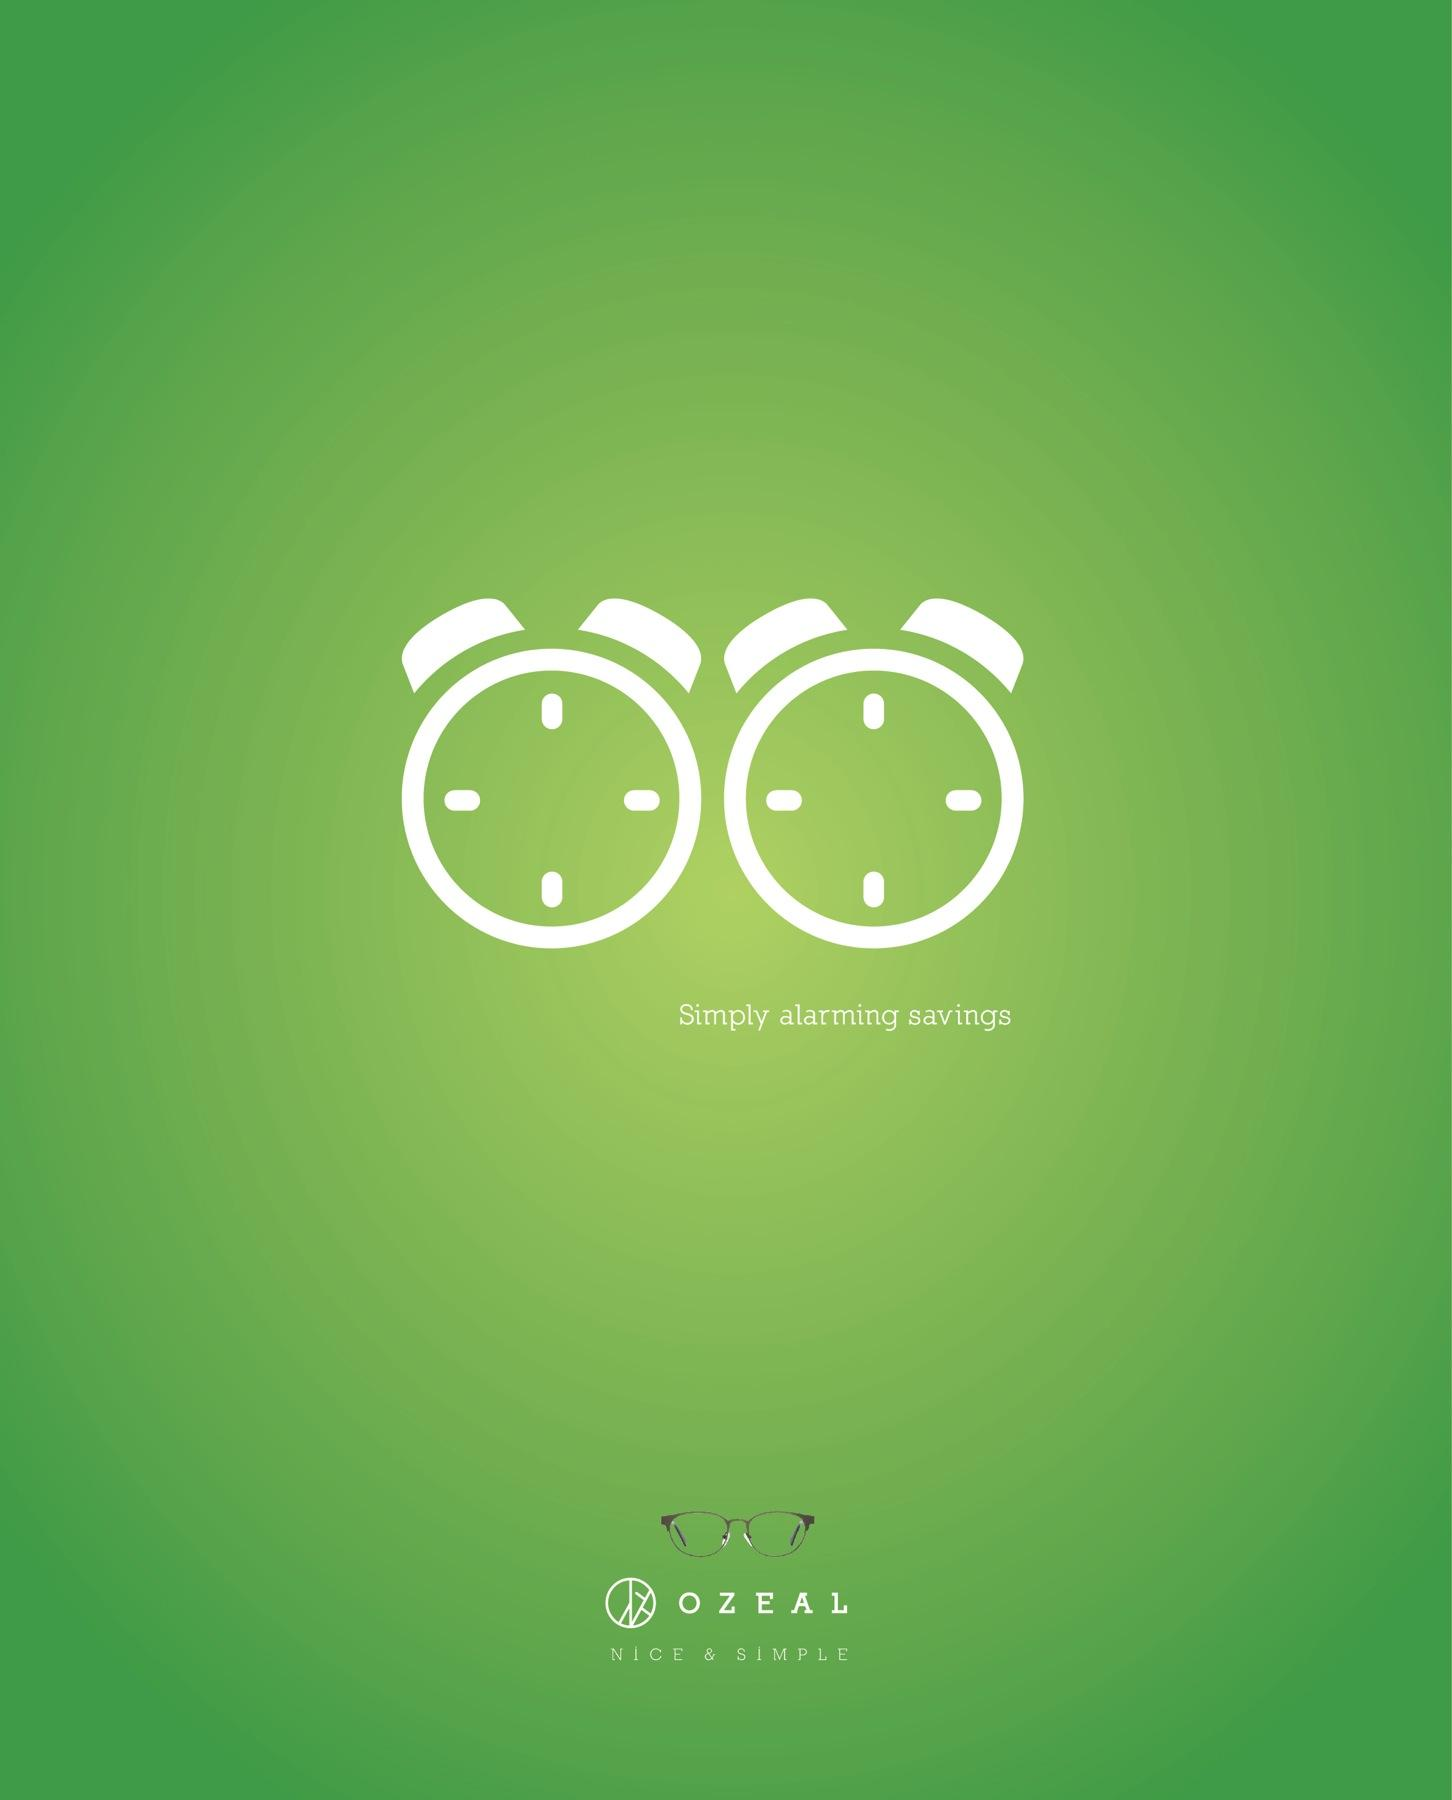 Ozeal Outdoor Ad -  Nice & Simple, 4